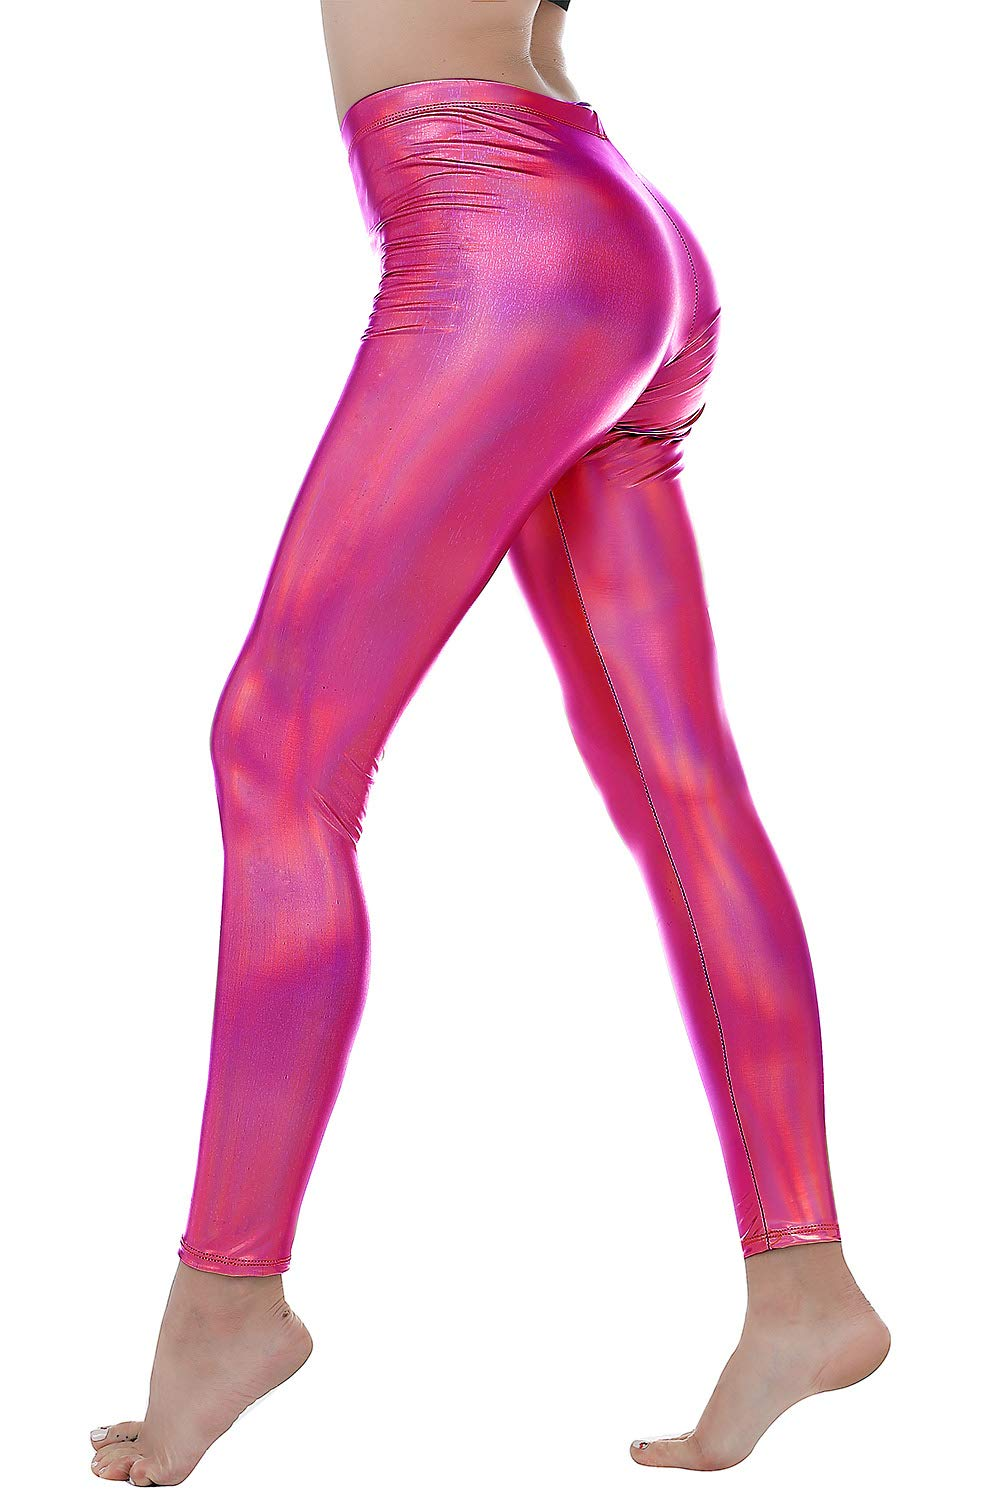 Women Faux Leather Leggings Wet Look Metallic Waist Legging Pants Trousers (Multicolor Rose, XL)